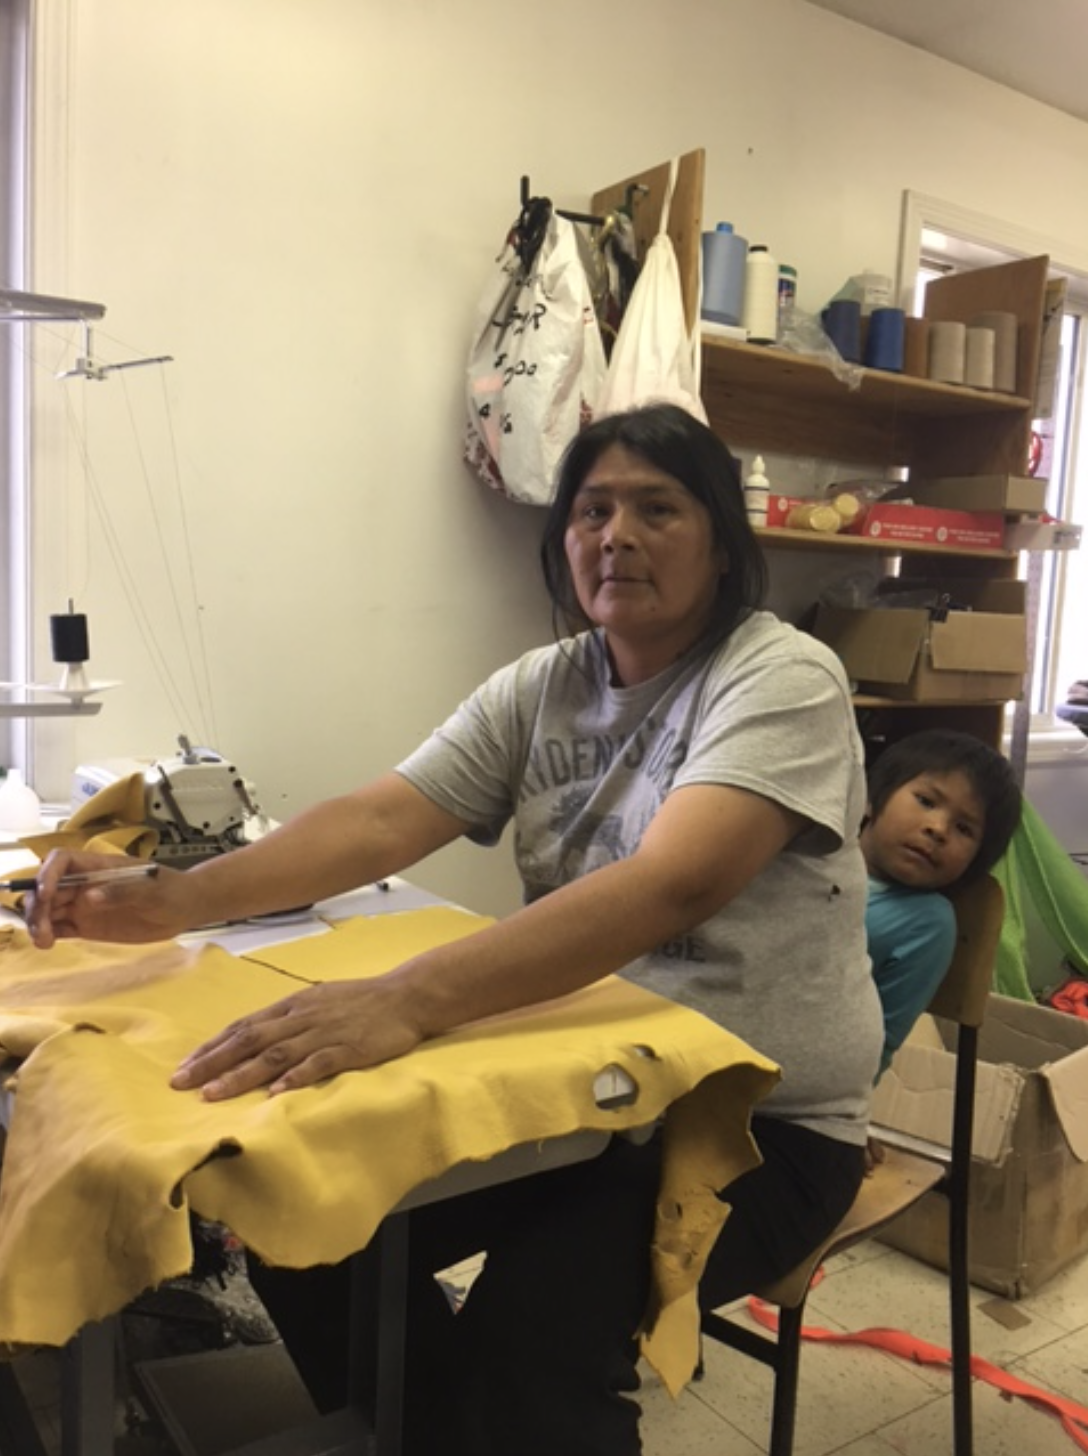 This is Sheila, who is a very talented and creative woman. Everly is the youngest of 6 children and comes with her to KASKii. Sheila is training to be a sewing machine operator.